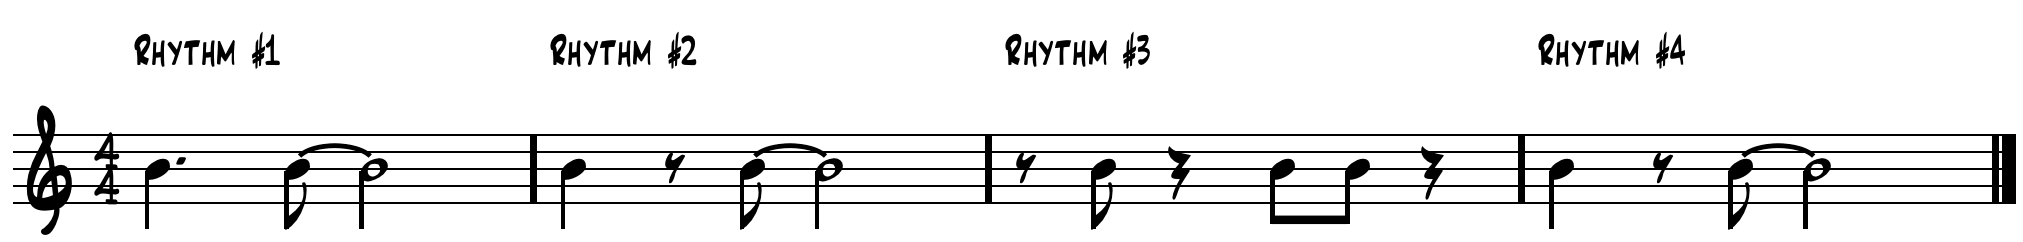 Piano Swing Comp Rhythms copy 2.png